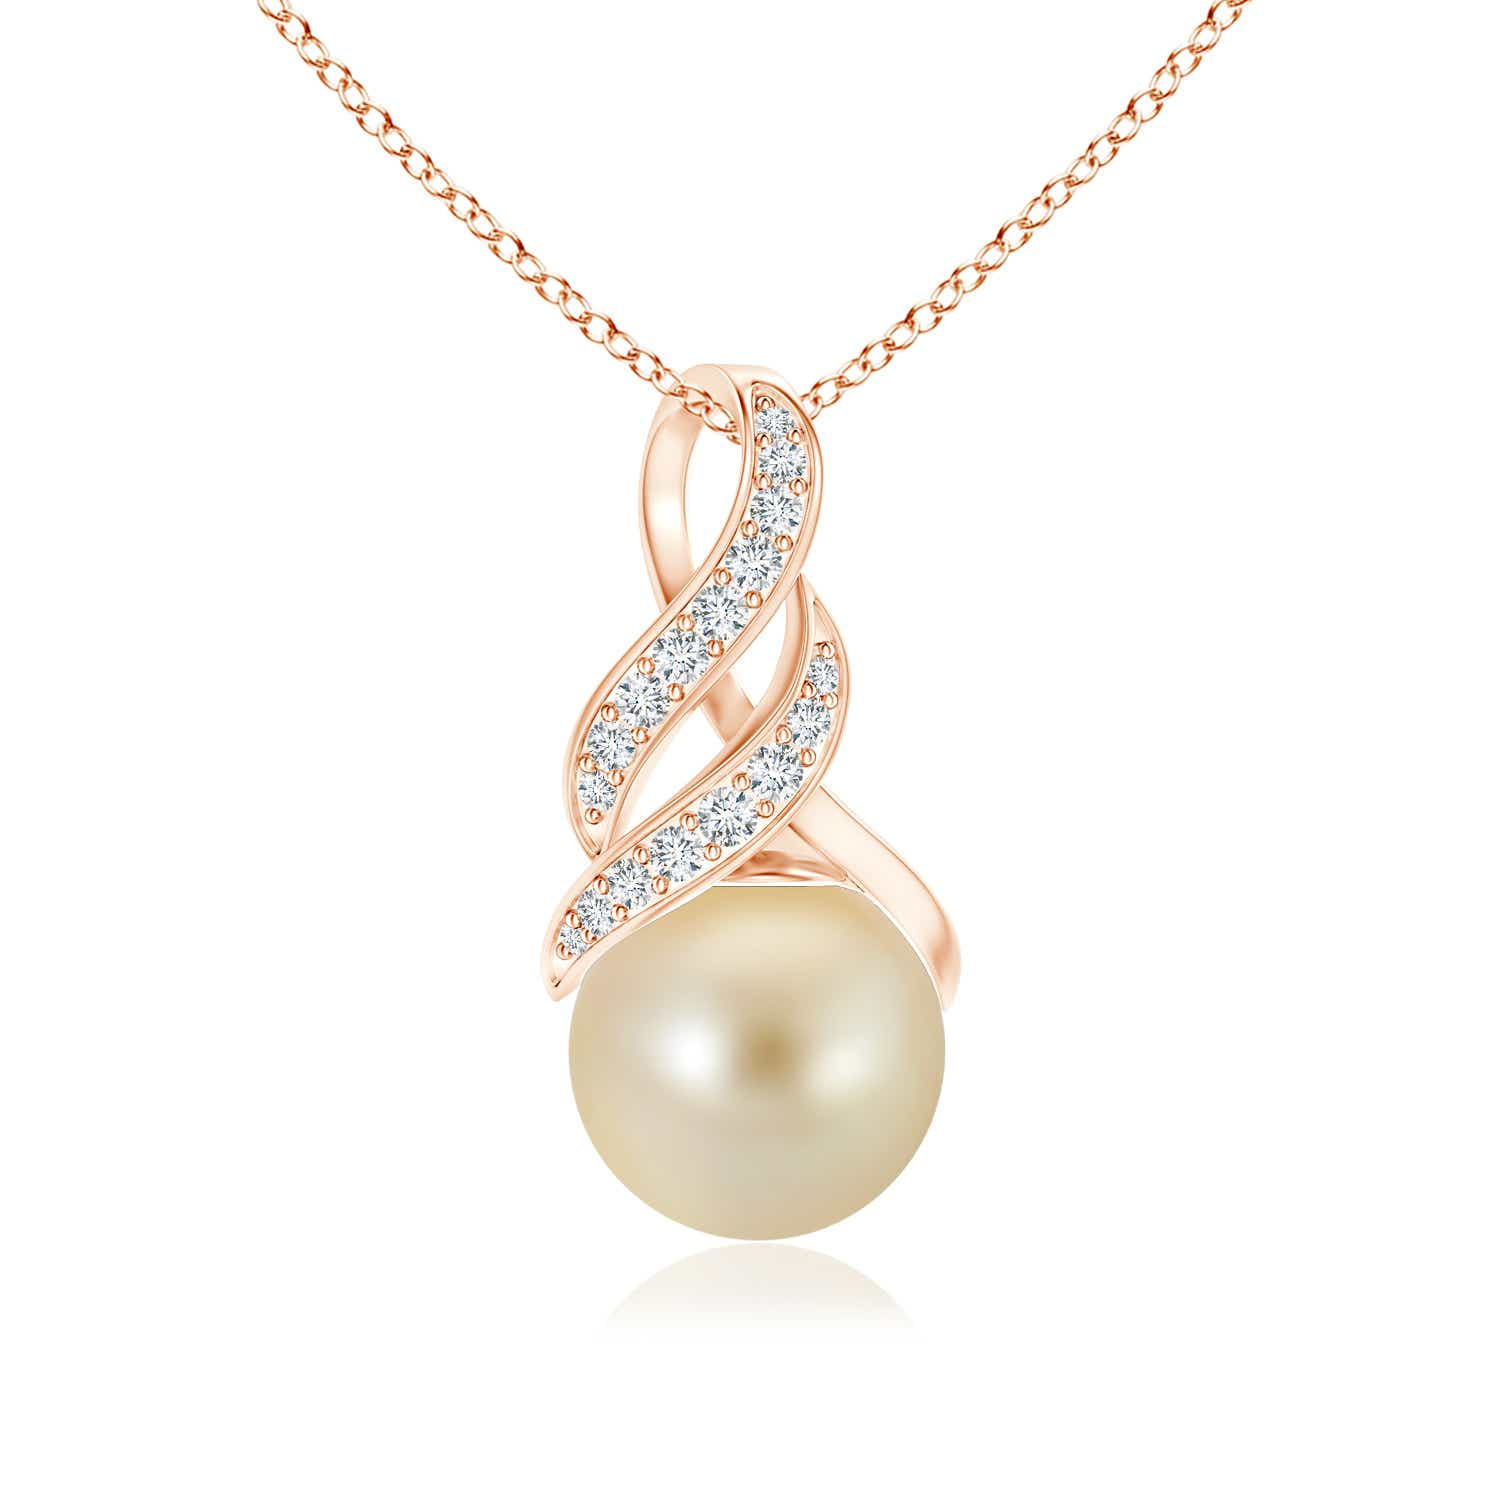 Angara Golden South Sea Cultured Pearl Entwined Heart Pendant; Pearl Pendant & Pearl Necklace qUkdm7